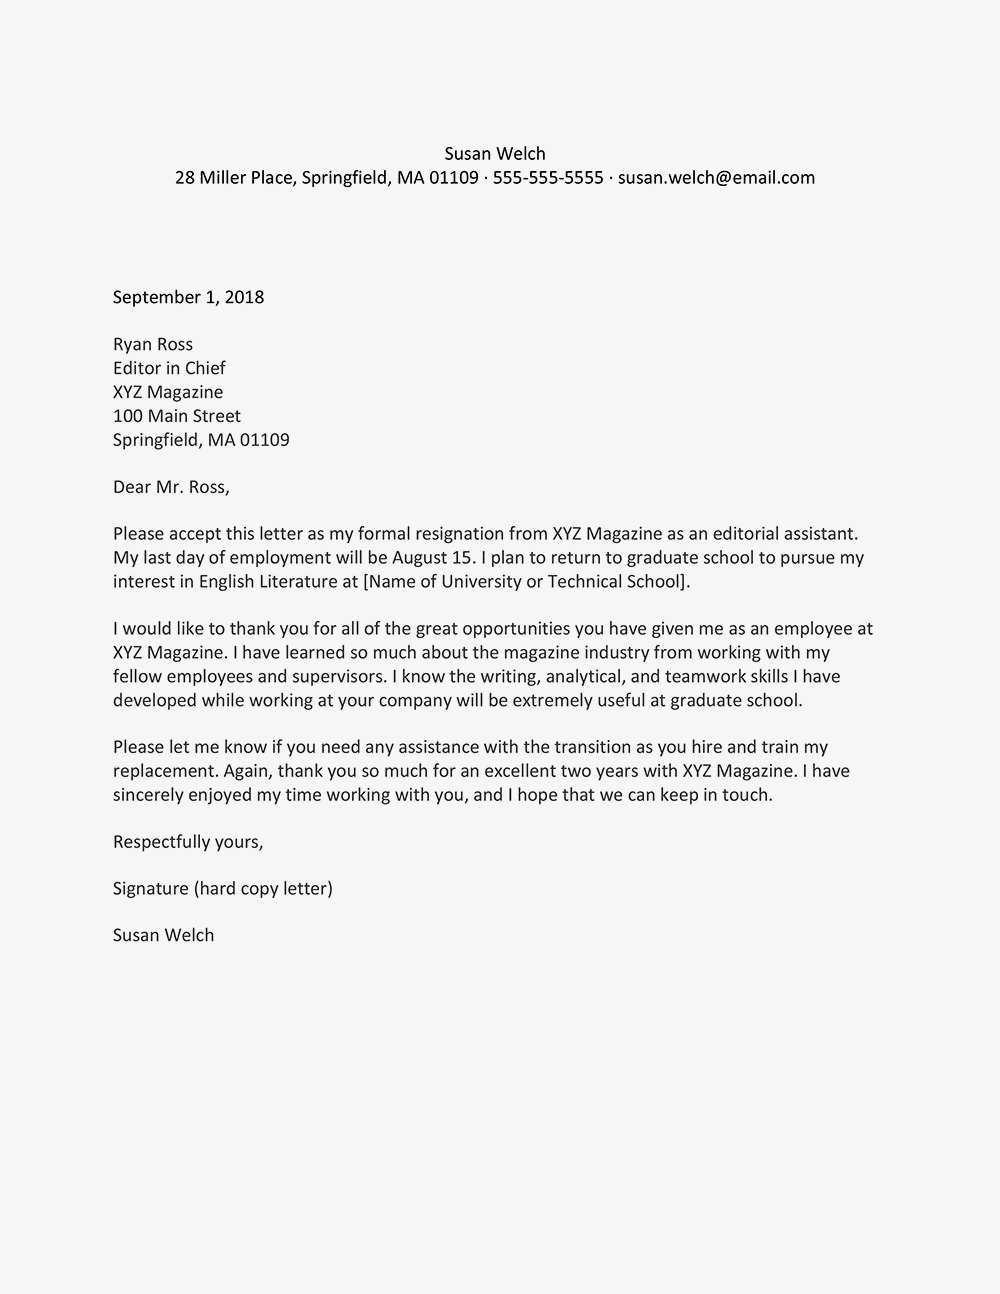 Screenshot of a going back to school resignation letter example